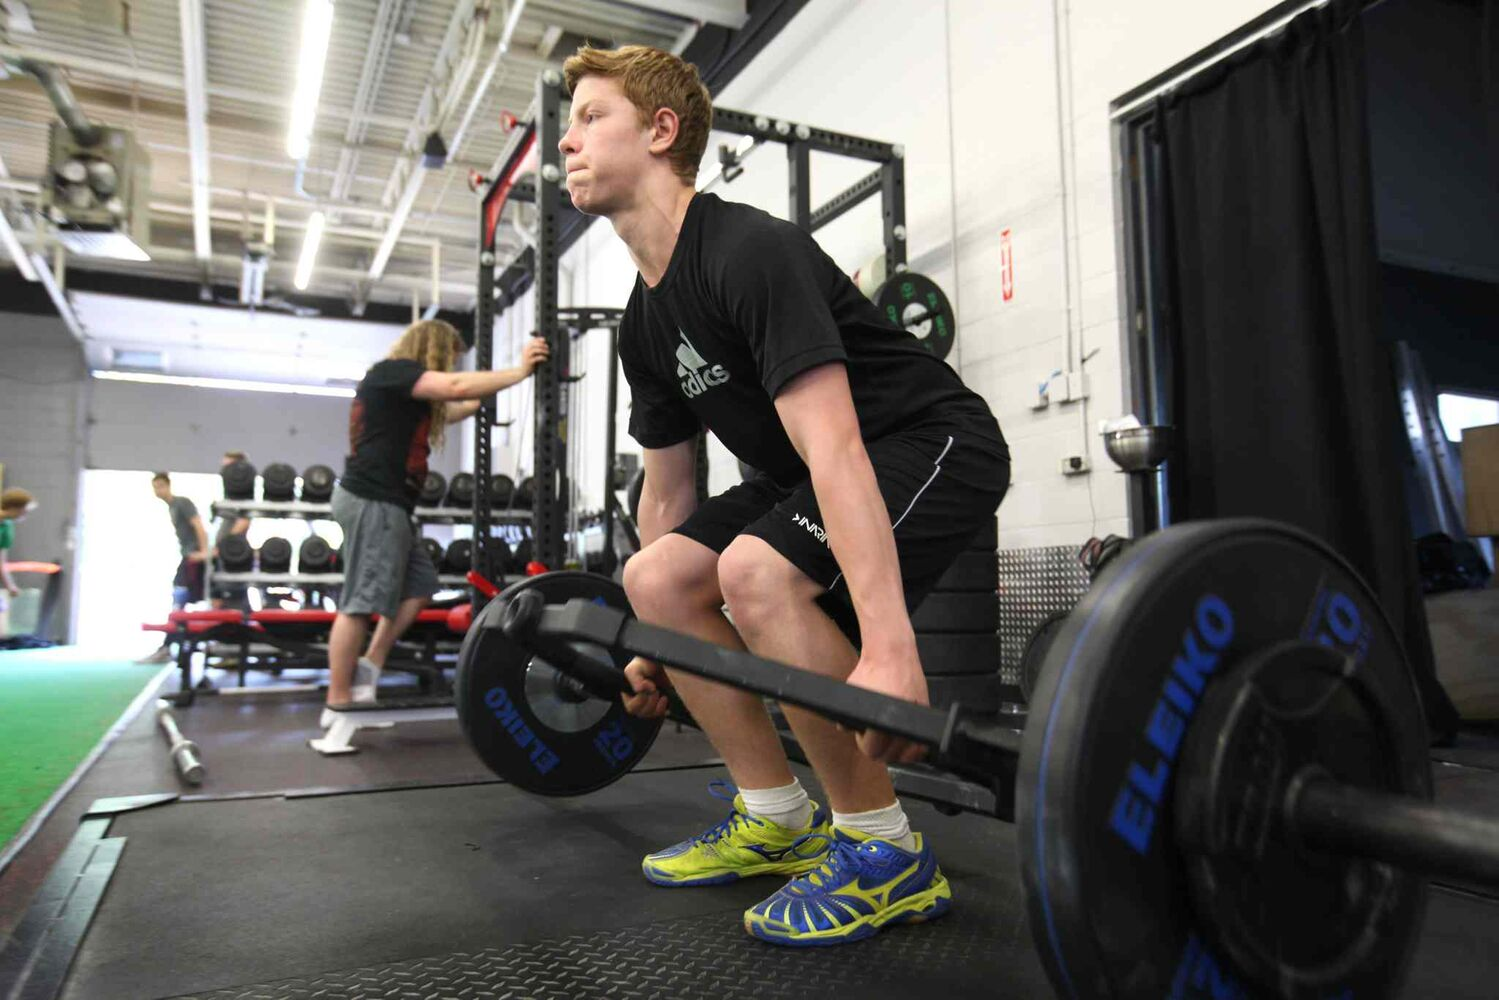 Griffin has started weight training at McDole's Gym after school to keep him in shape for hockey in the off-season.   (RUTH BONNEVILLE / WINNIPEG FREE PRESS)